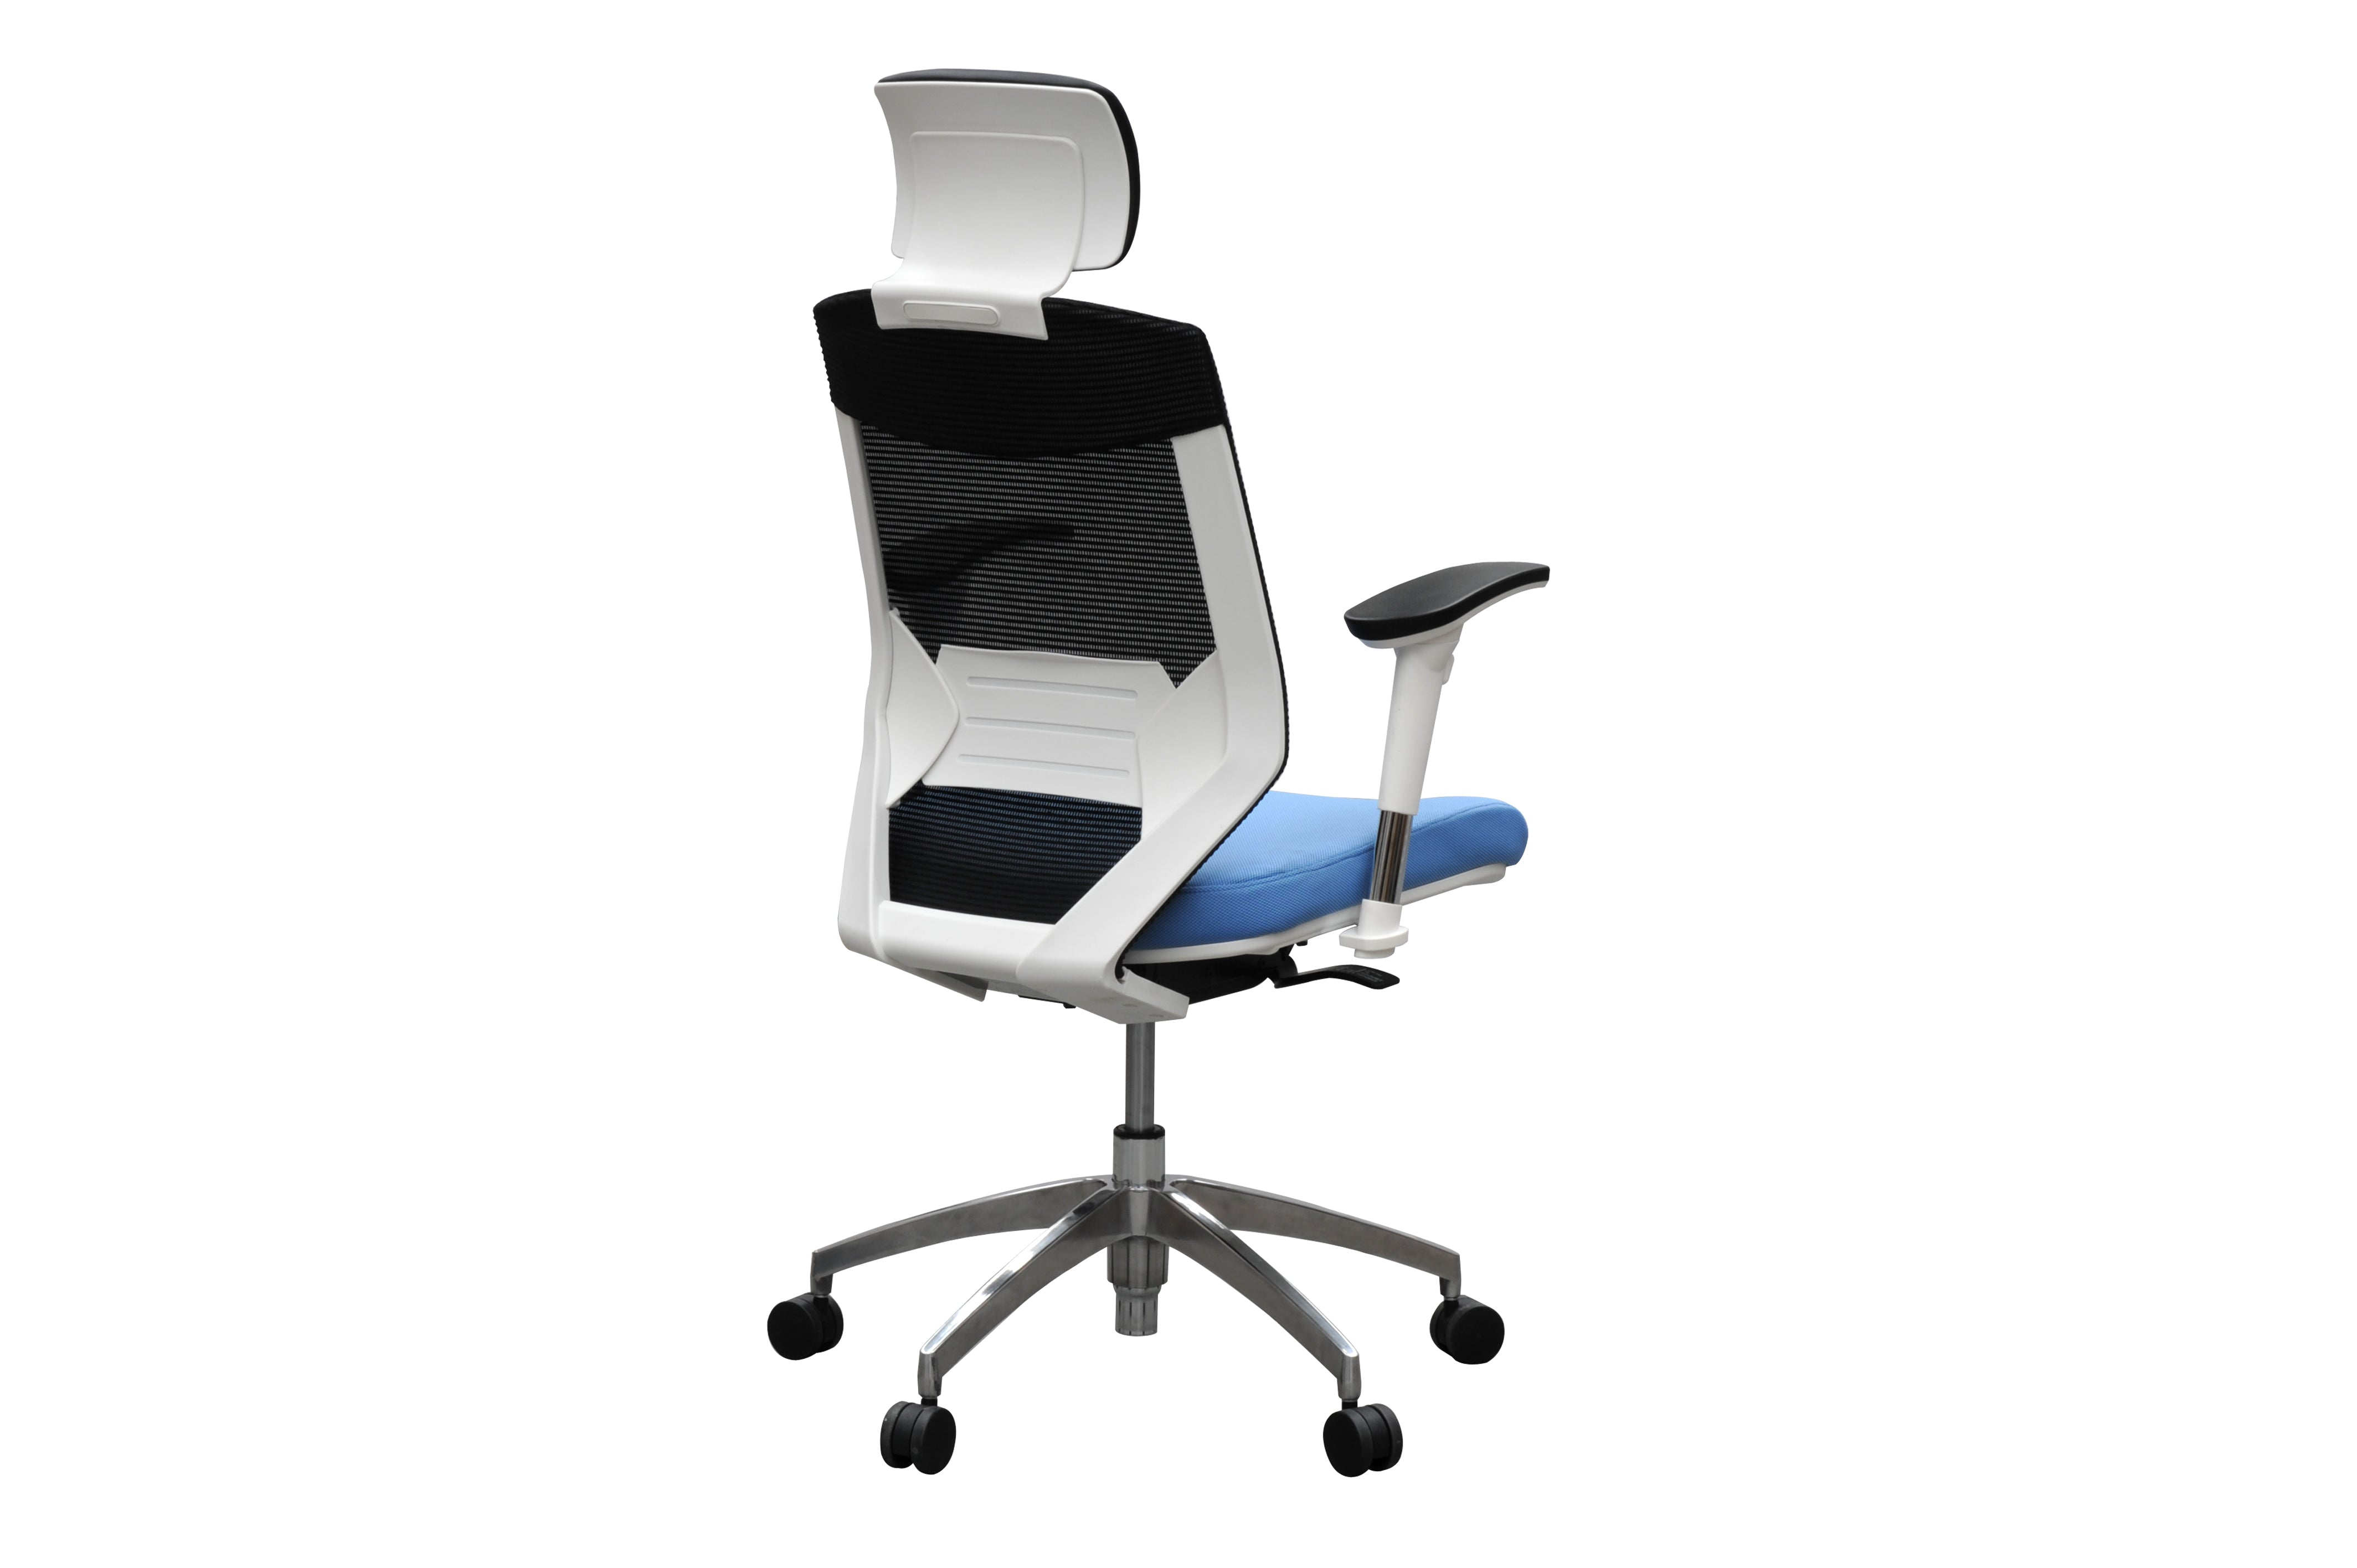 Vogue™ Ergonomic Mesh Back Chair - White Frame High - KiPP